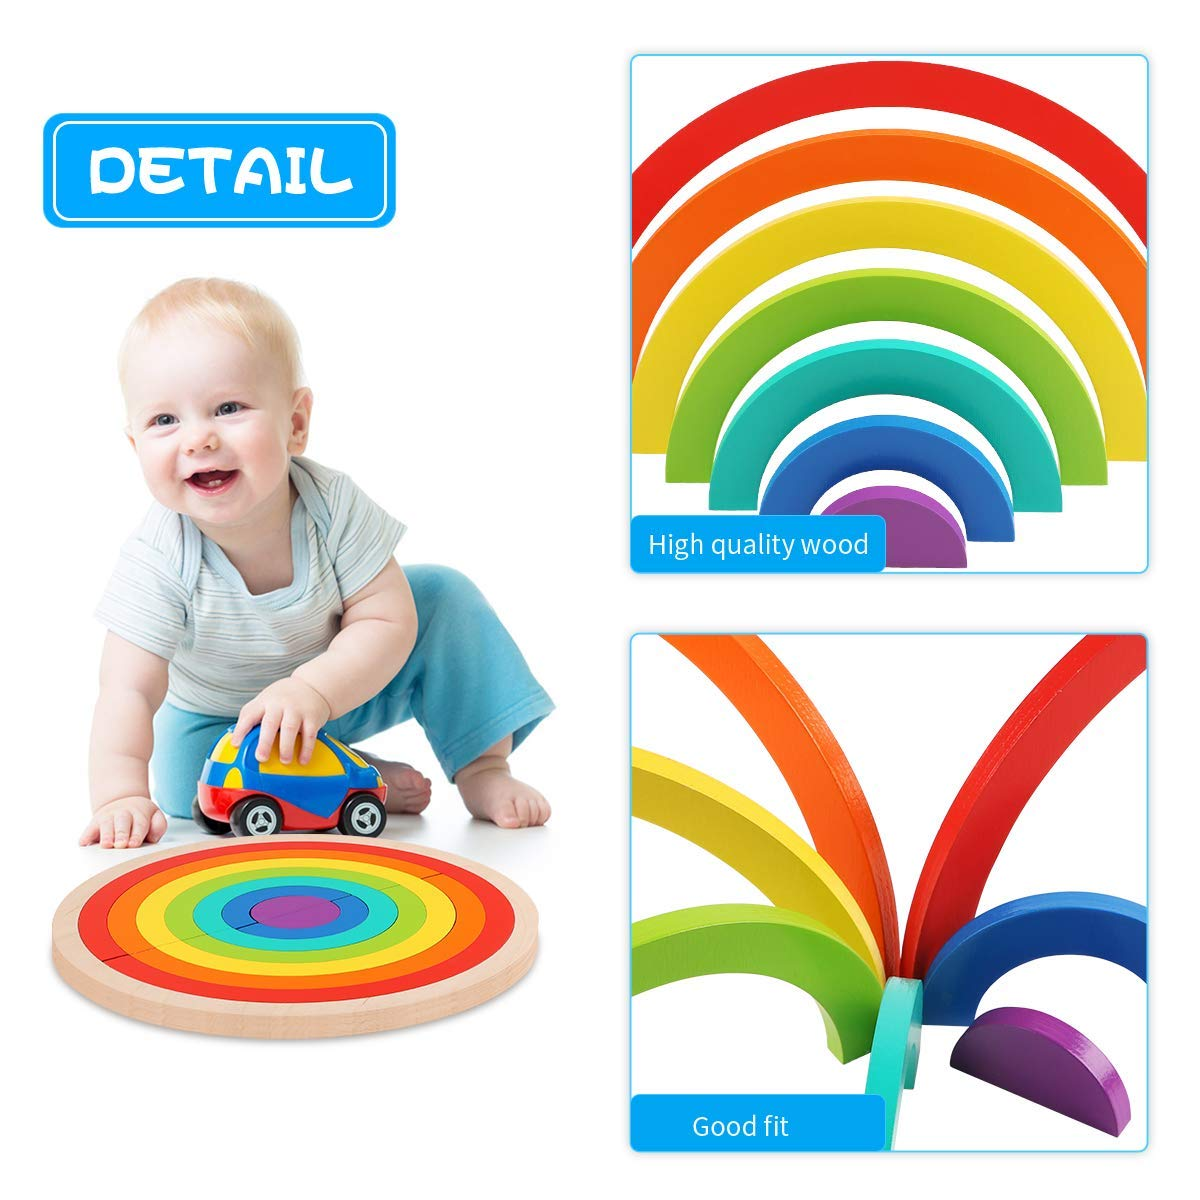 14Pcs M-Aimee Wooden Rainbow Stacking Game Learning Toy Geometry Building Blocks Nesting Stacker Colorful Educational Toys Puzzle for Kids Baby Toddlers Children